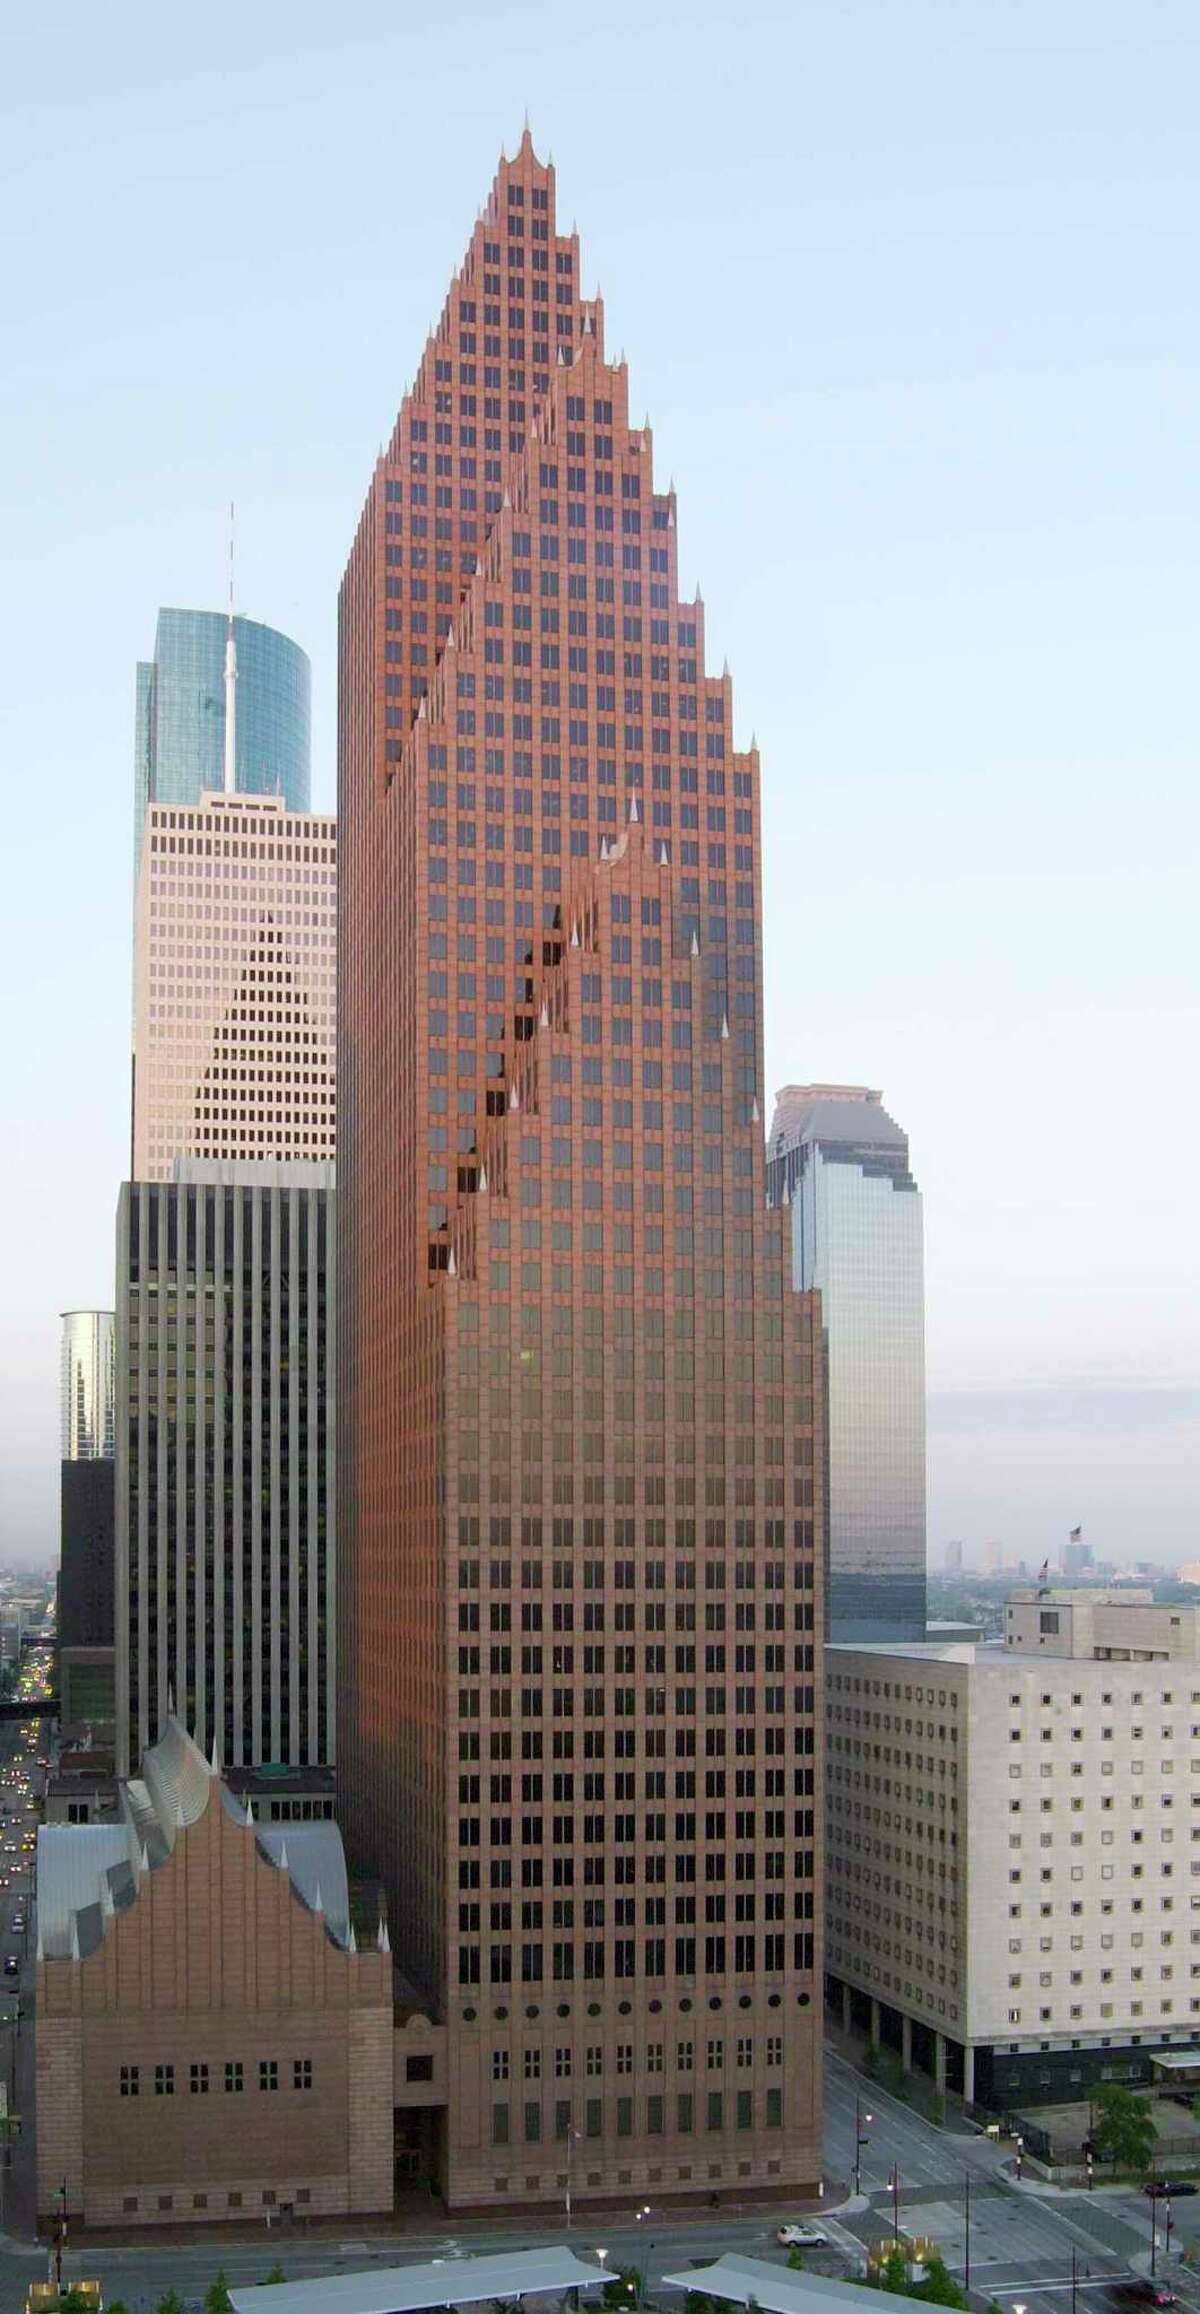 Houston's 56-story Bank of America Center at 700 Louisiana, was designed by architects Phillip Johnson and John Burgee and developed by Hines. It was completed in 1983.